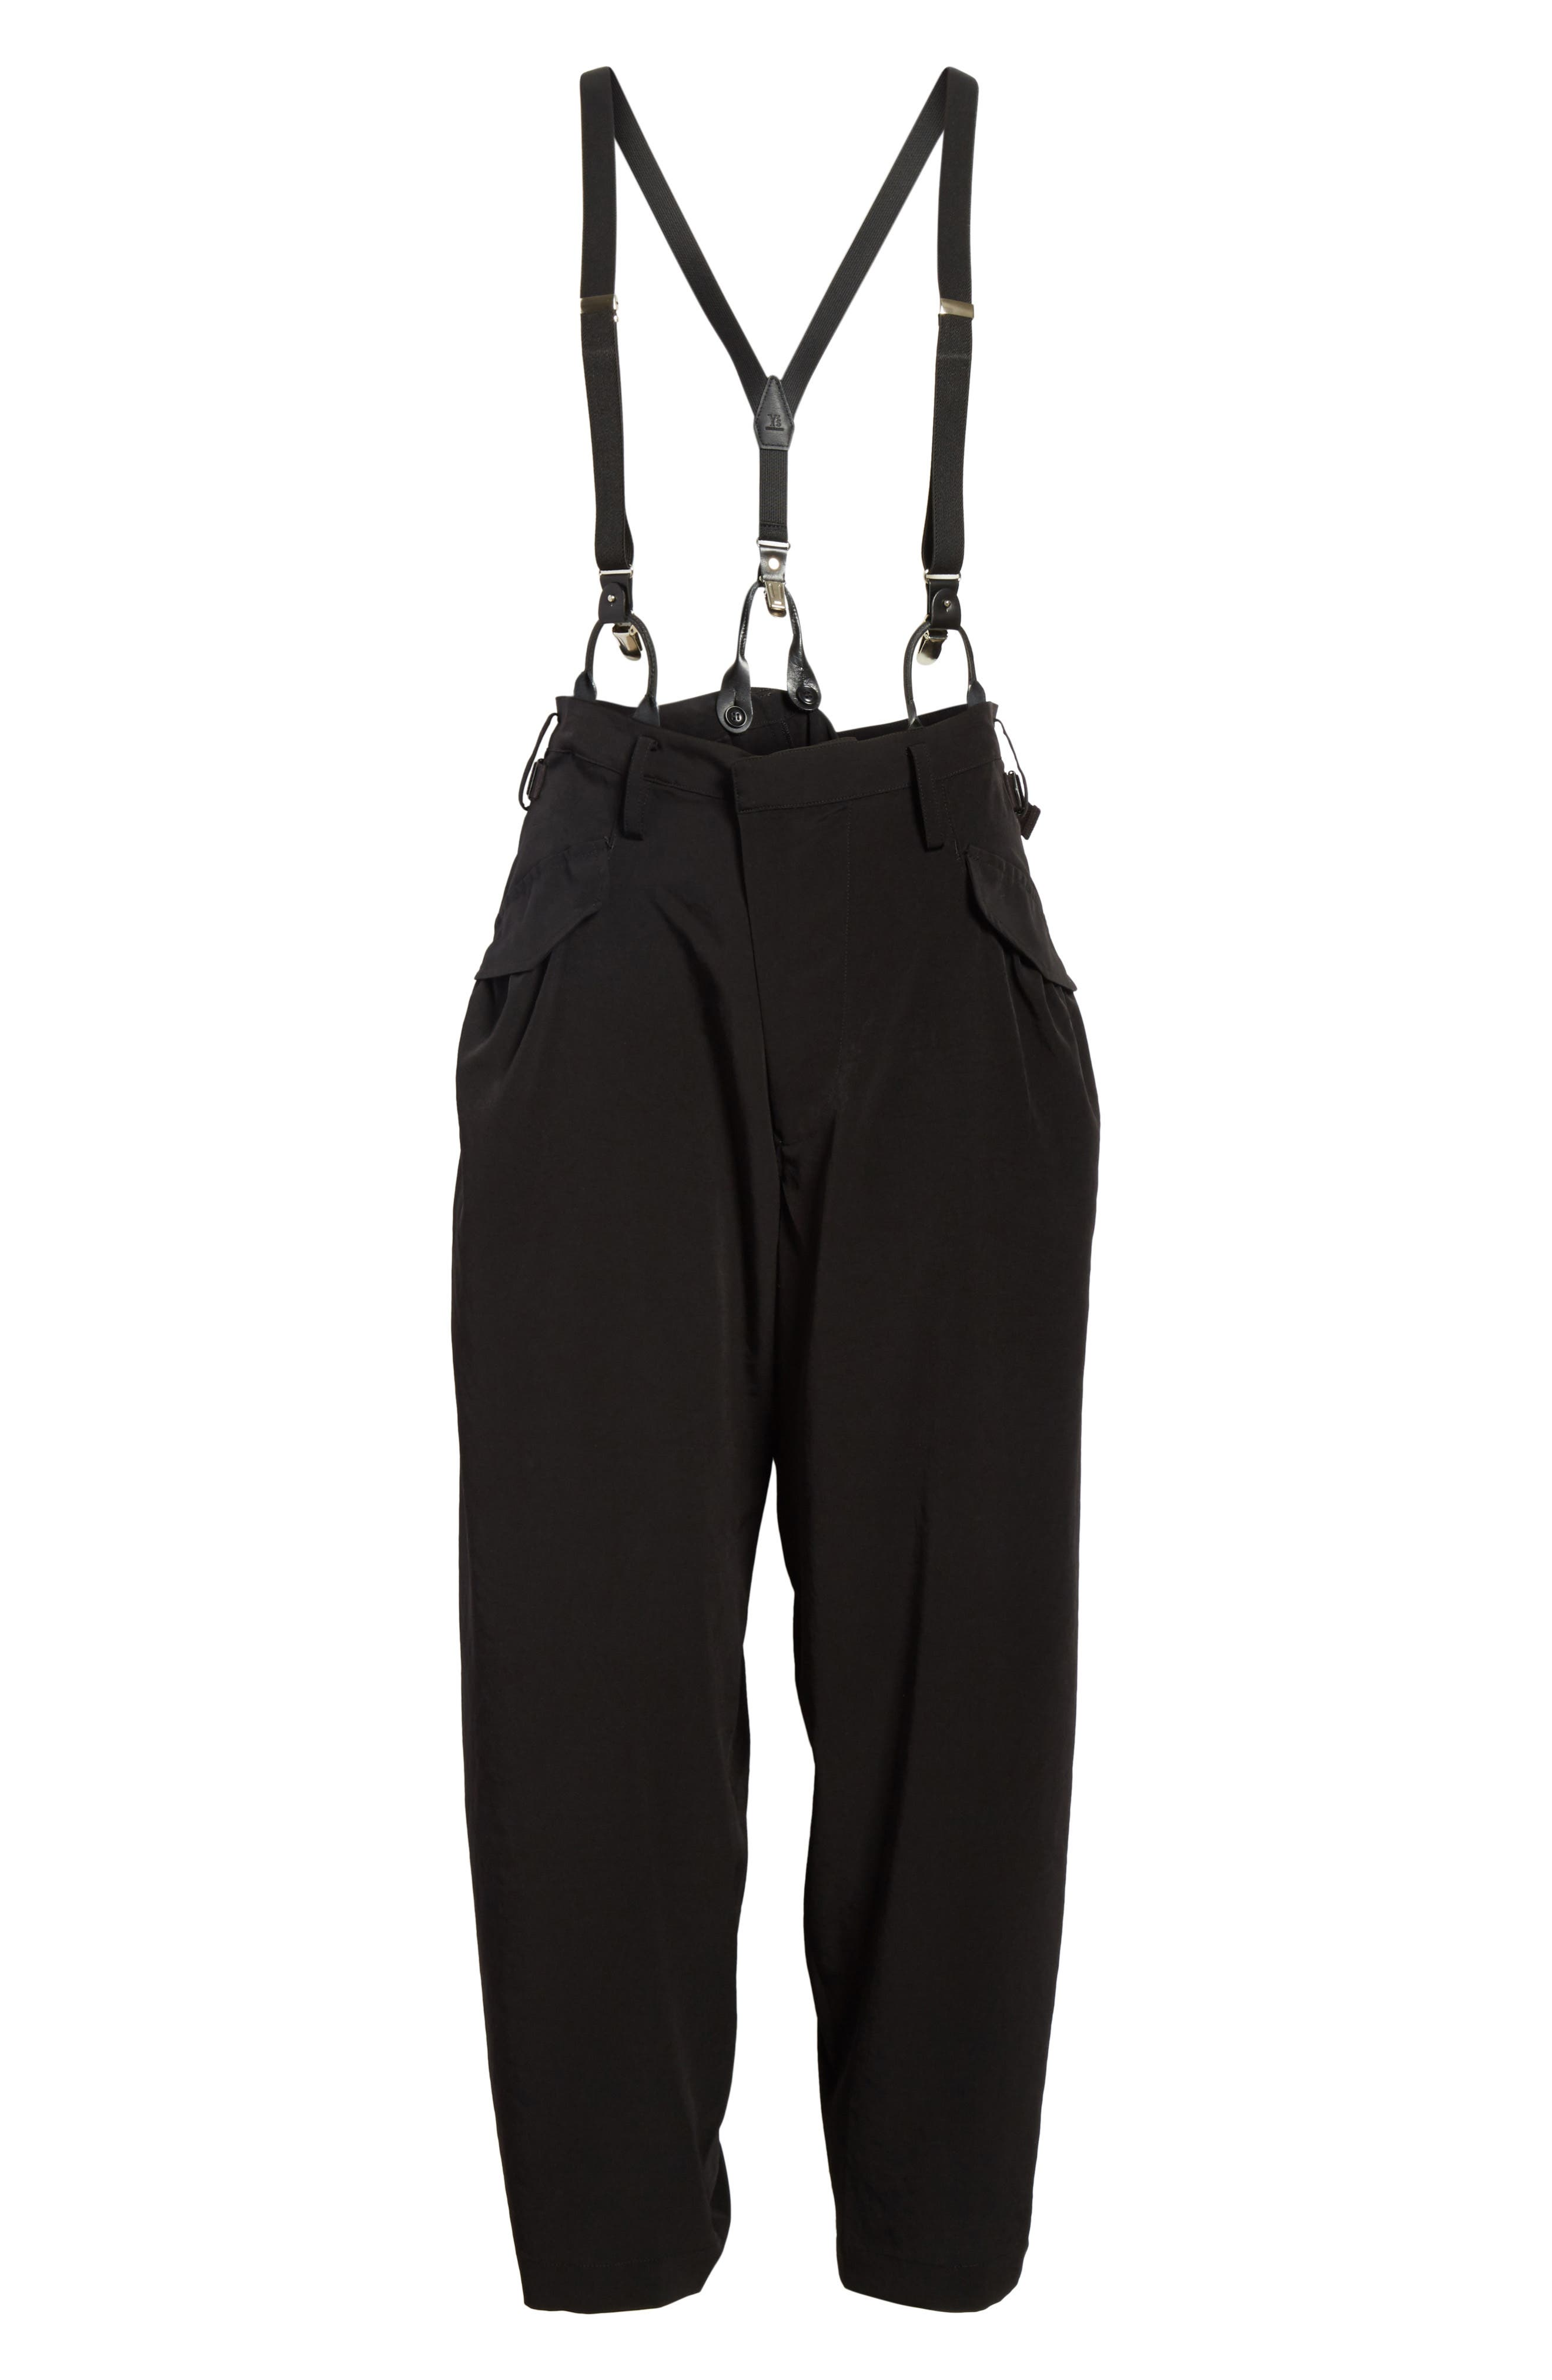 Pants with Suspenders,                             Alternate thumbnail 6, color,                             Black